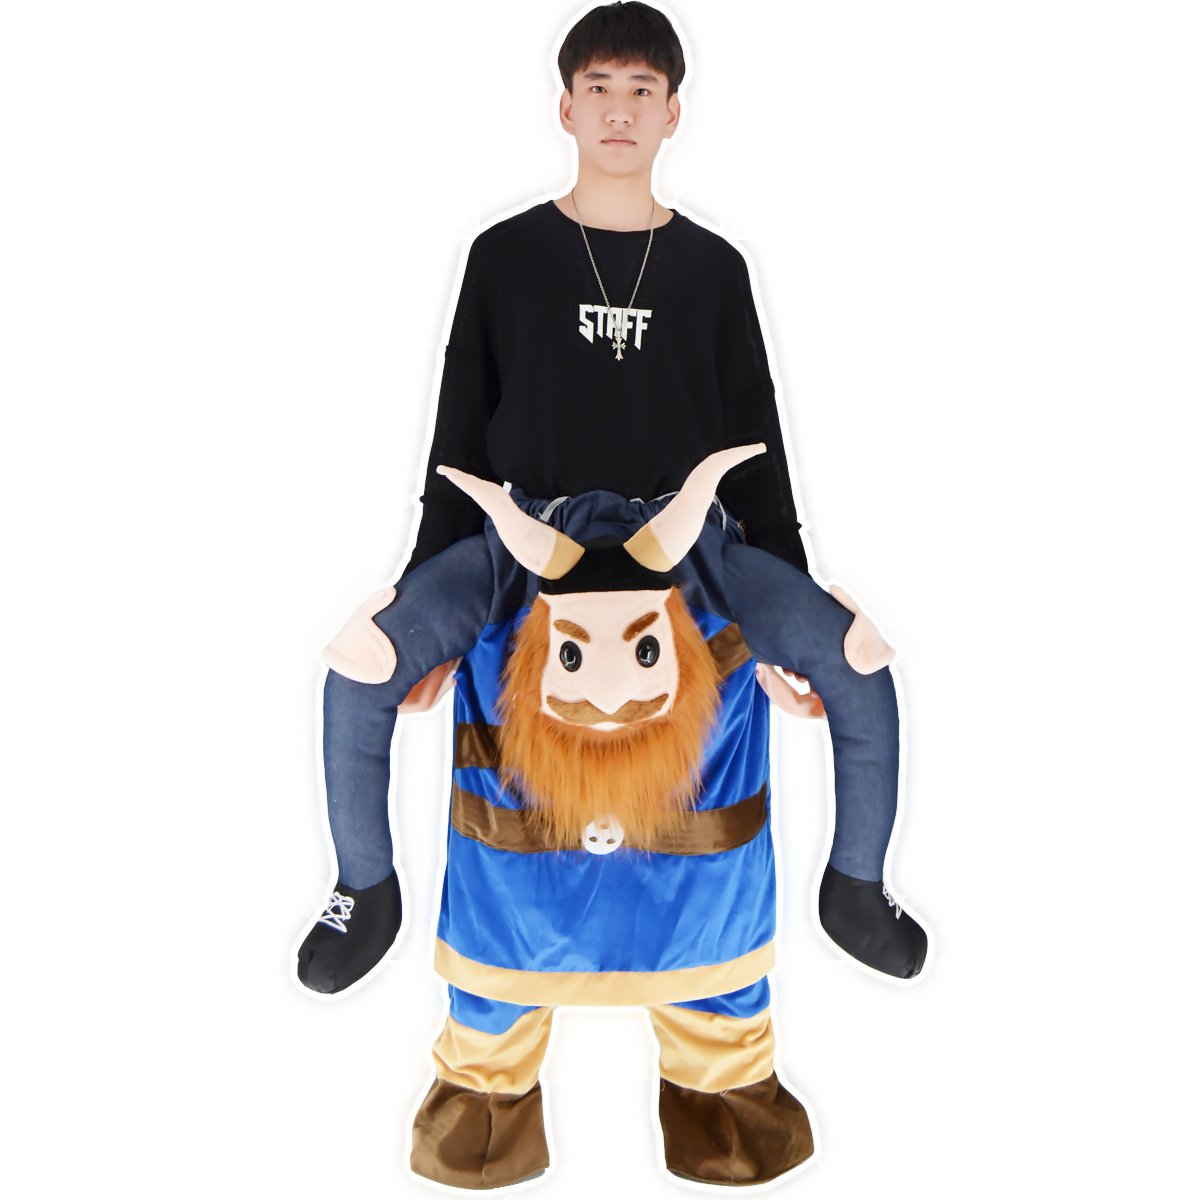 BAVARIAN BEER GUY CARRY ME MASCOT MASCOT ME FANCY DRESS COSTUME 37c5cd